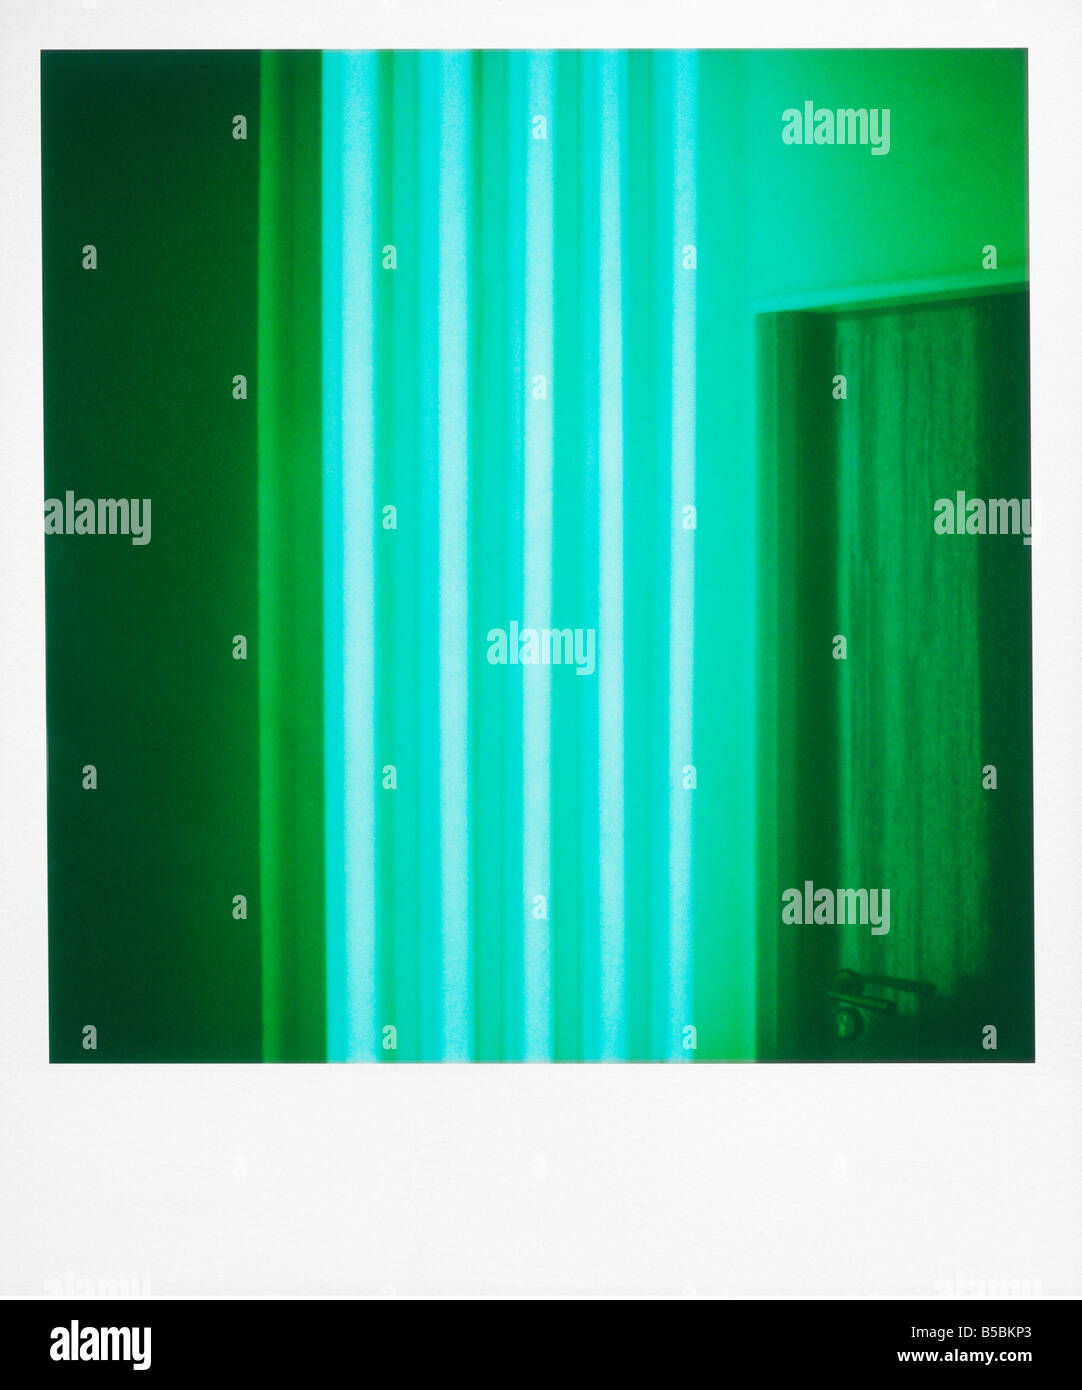 Polaroid of colourful stripes created by coloured fluorescent tubes Point Hotel Edinburgh Scotland United Kingdom - Stock Image